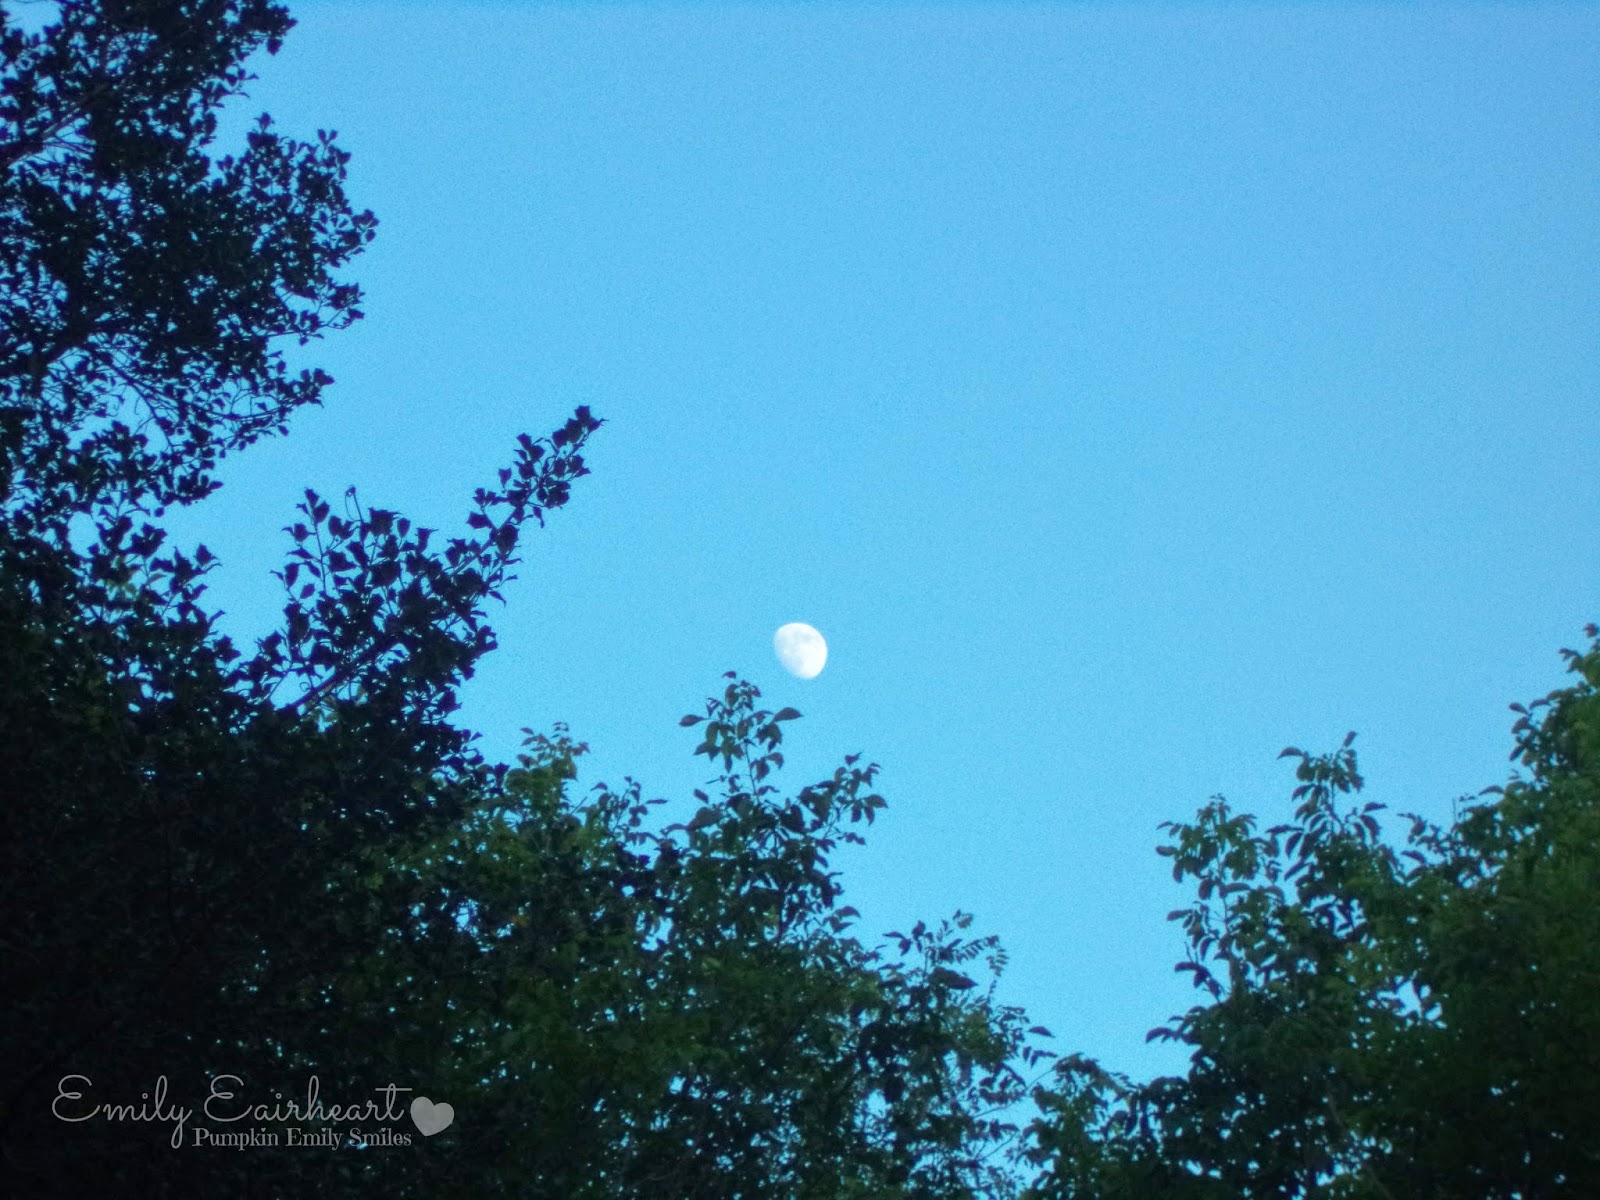 Moon in a bright blue sky.